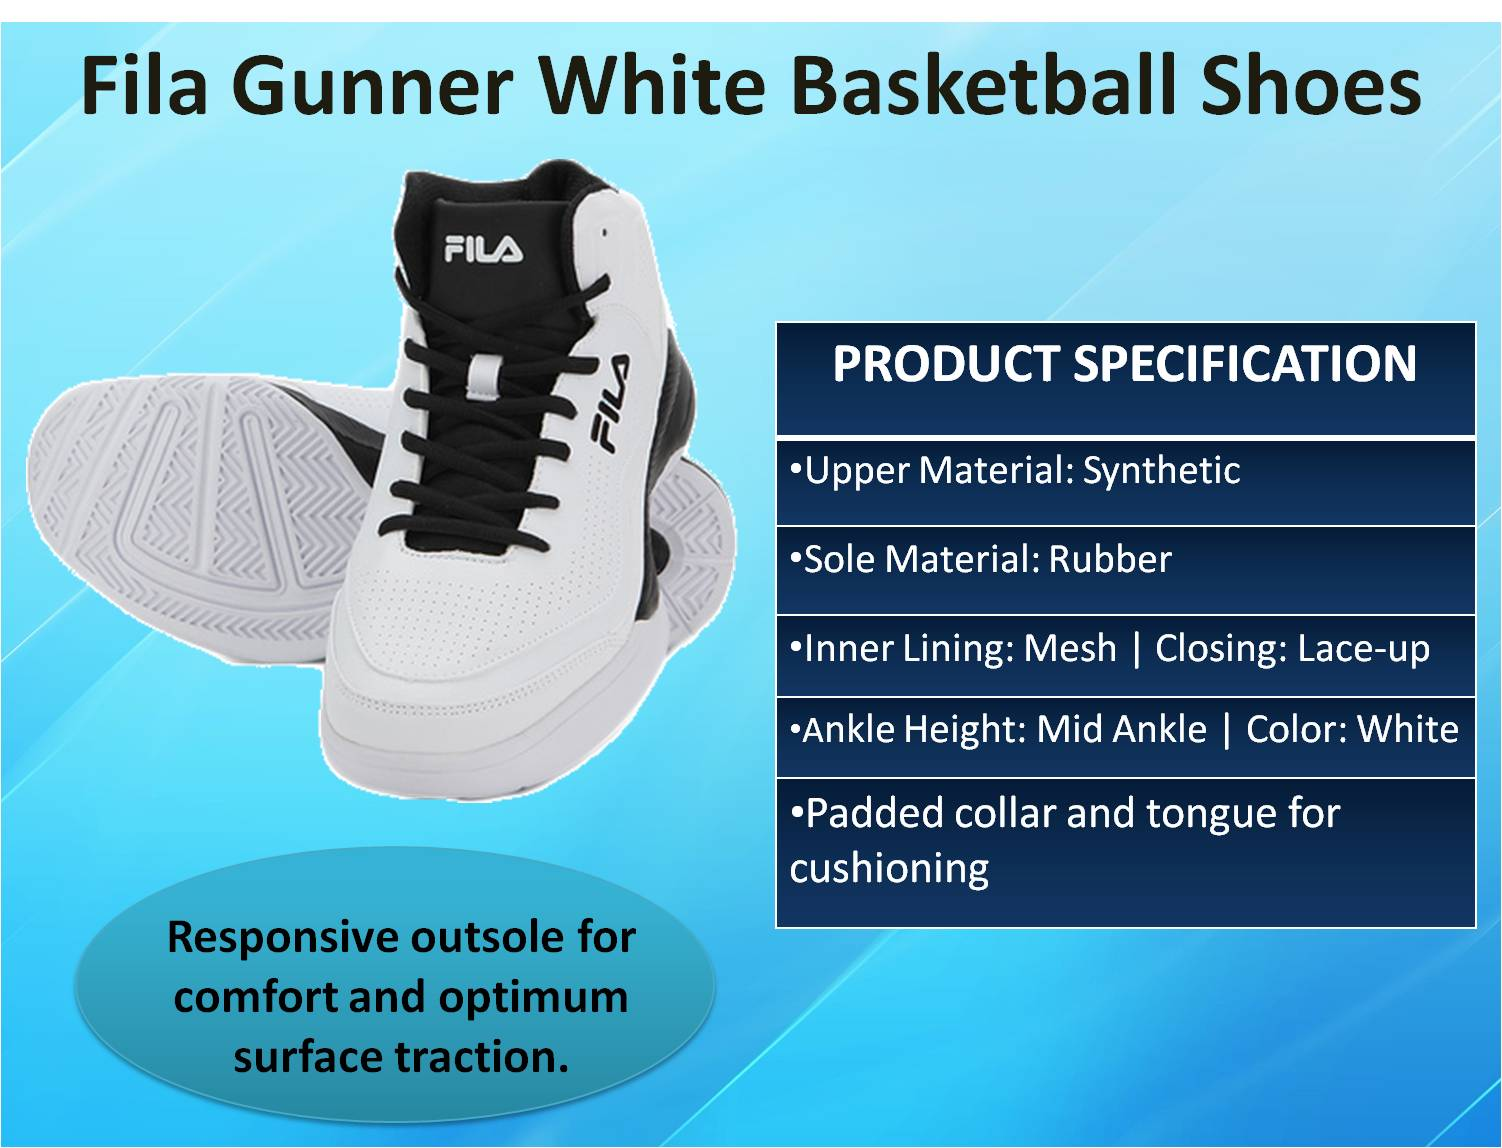 Fila Gunner White Basketball Shoes